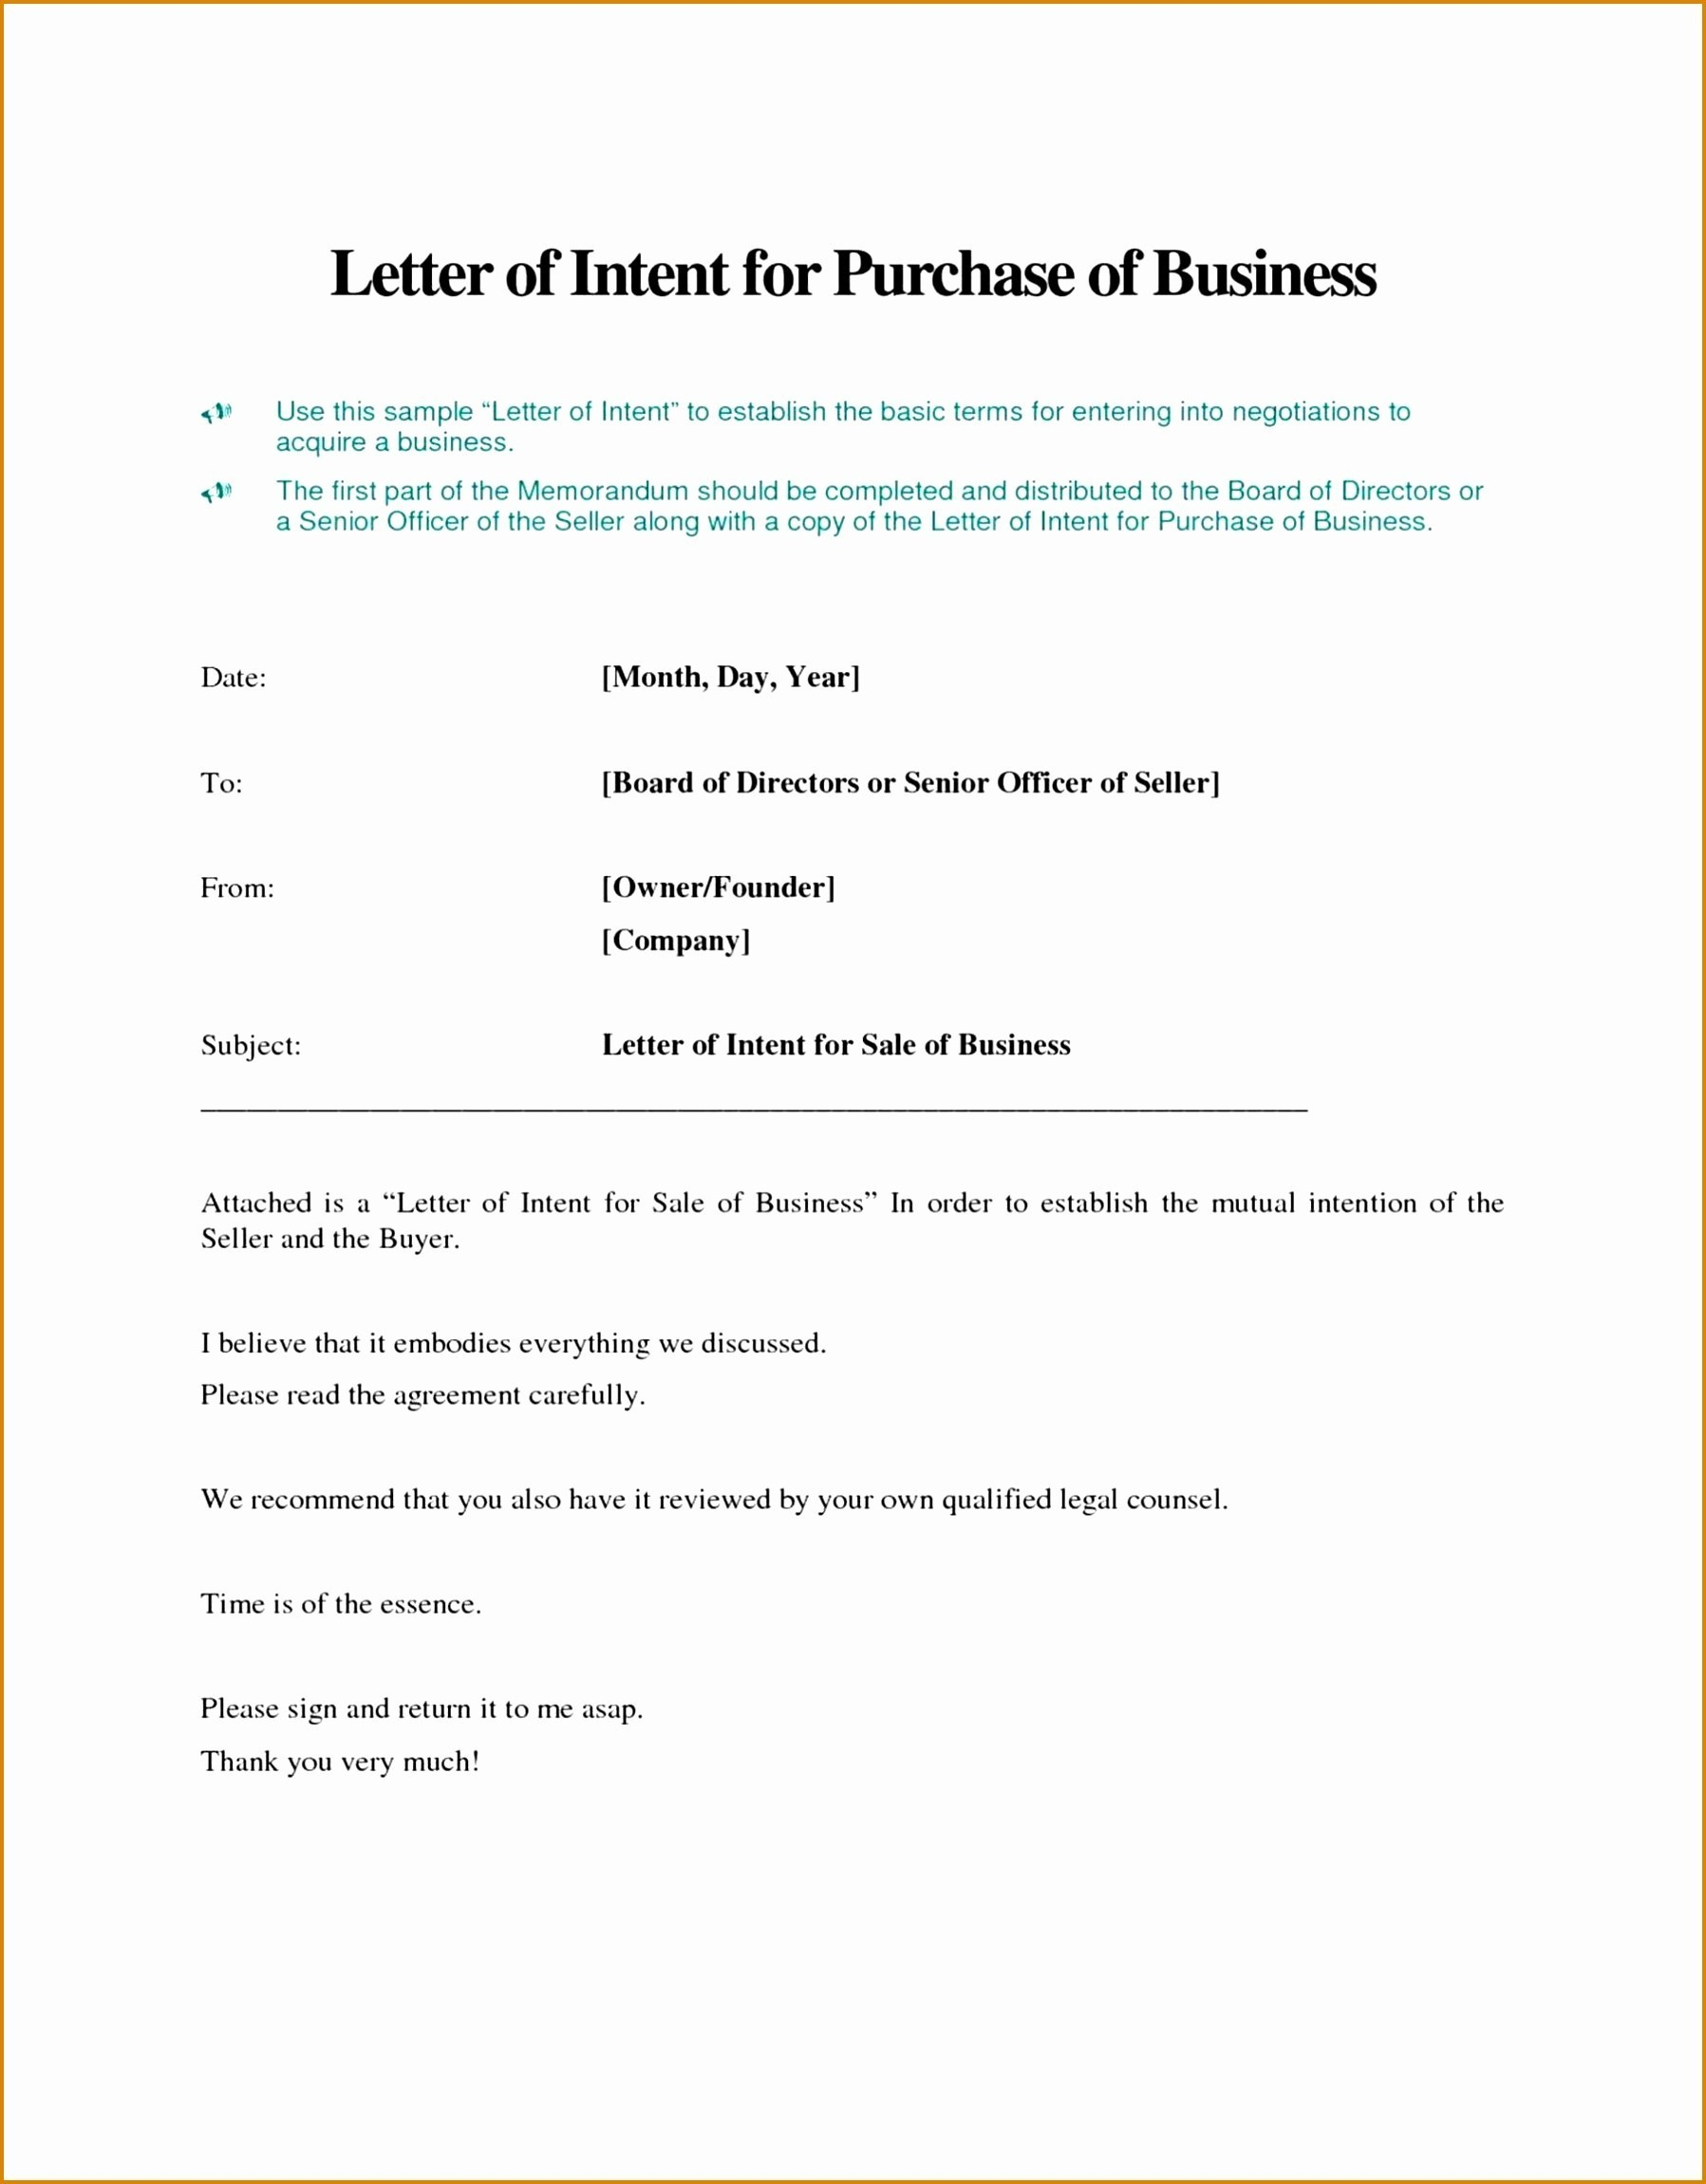 Letter Of Intent to Sell Business Template - Letter Intent to Do Business Template Best Awesome Letter Intent